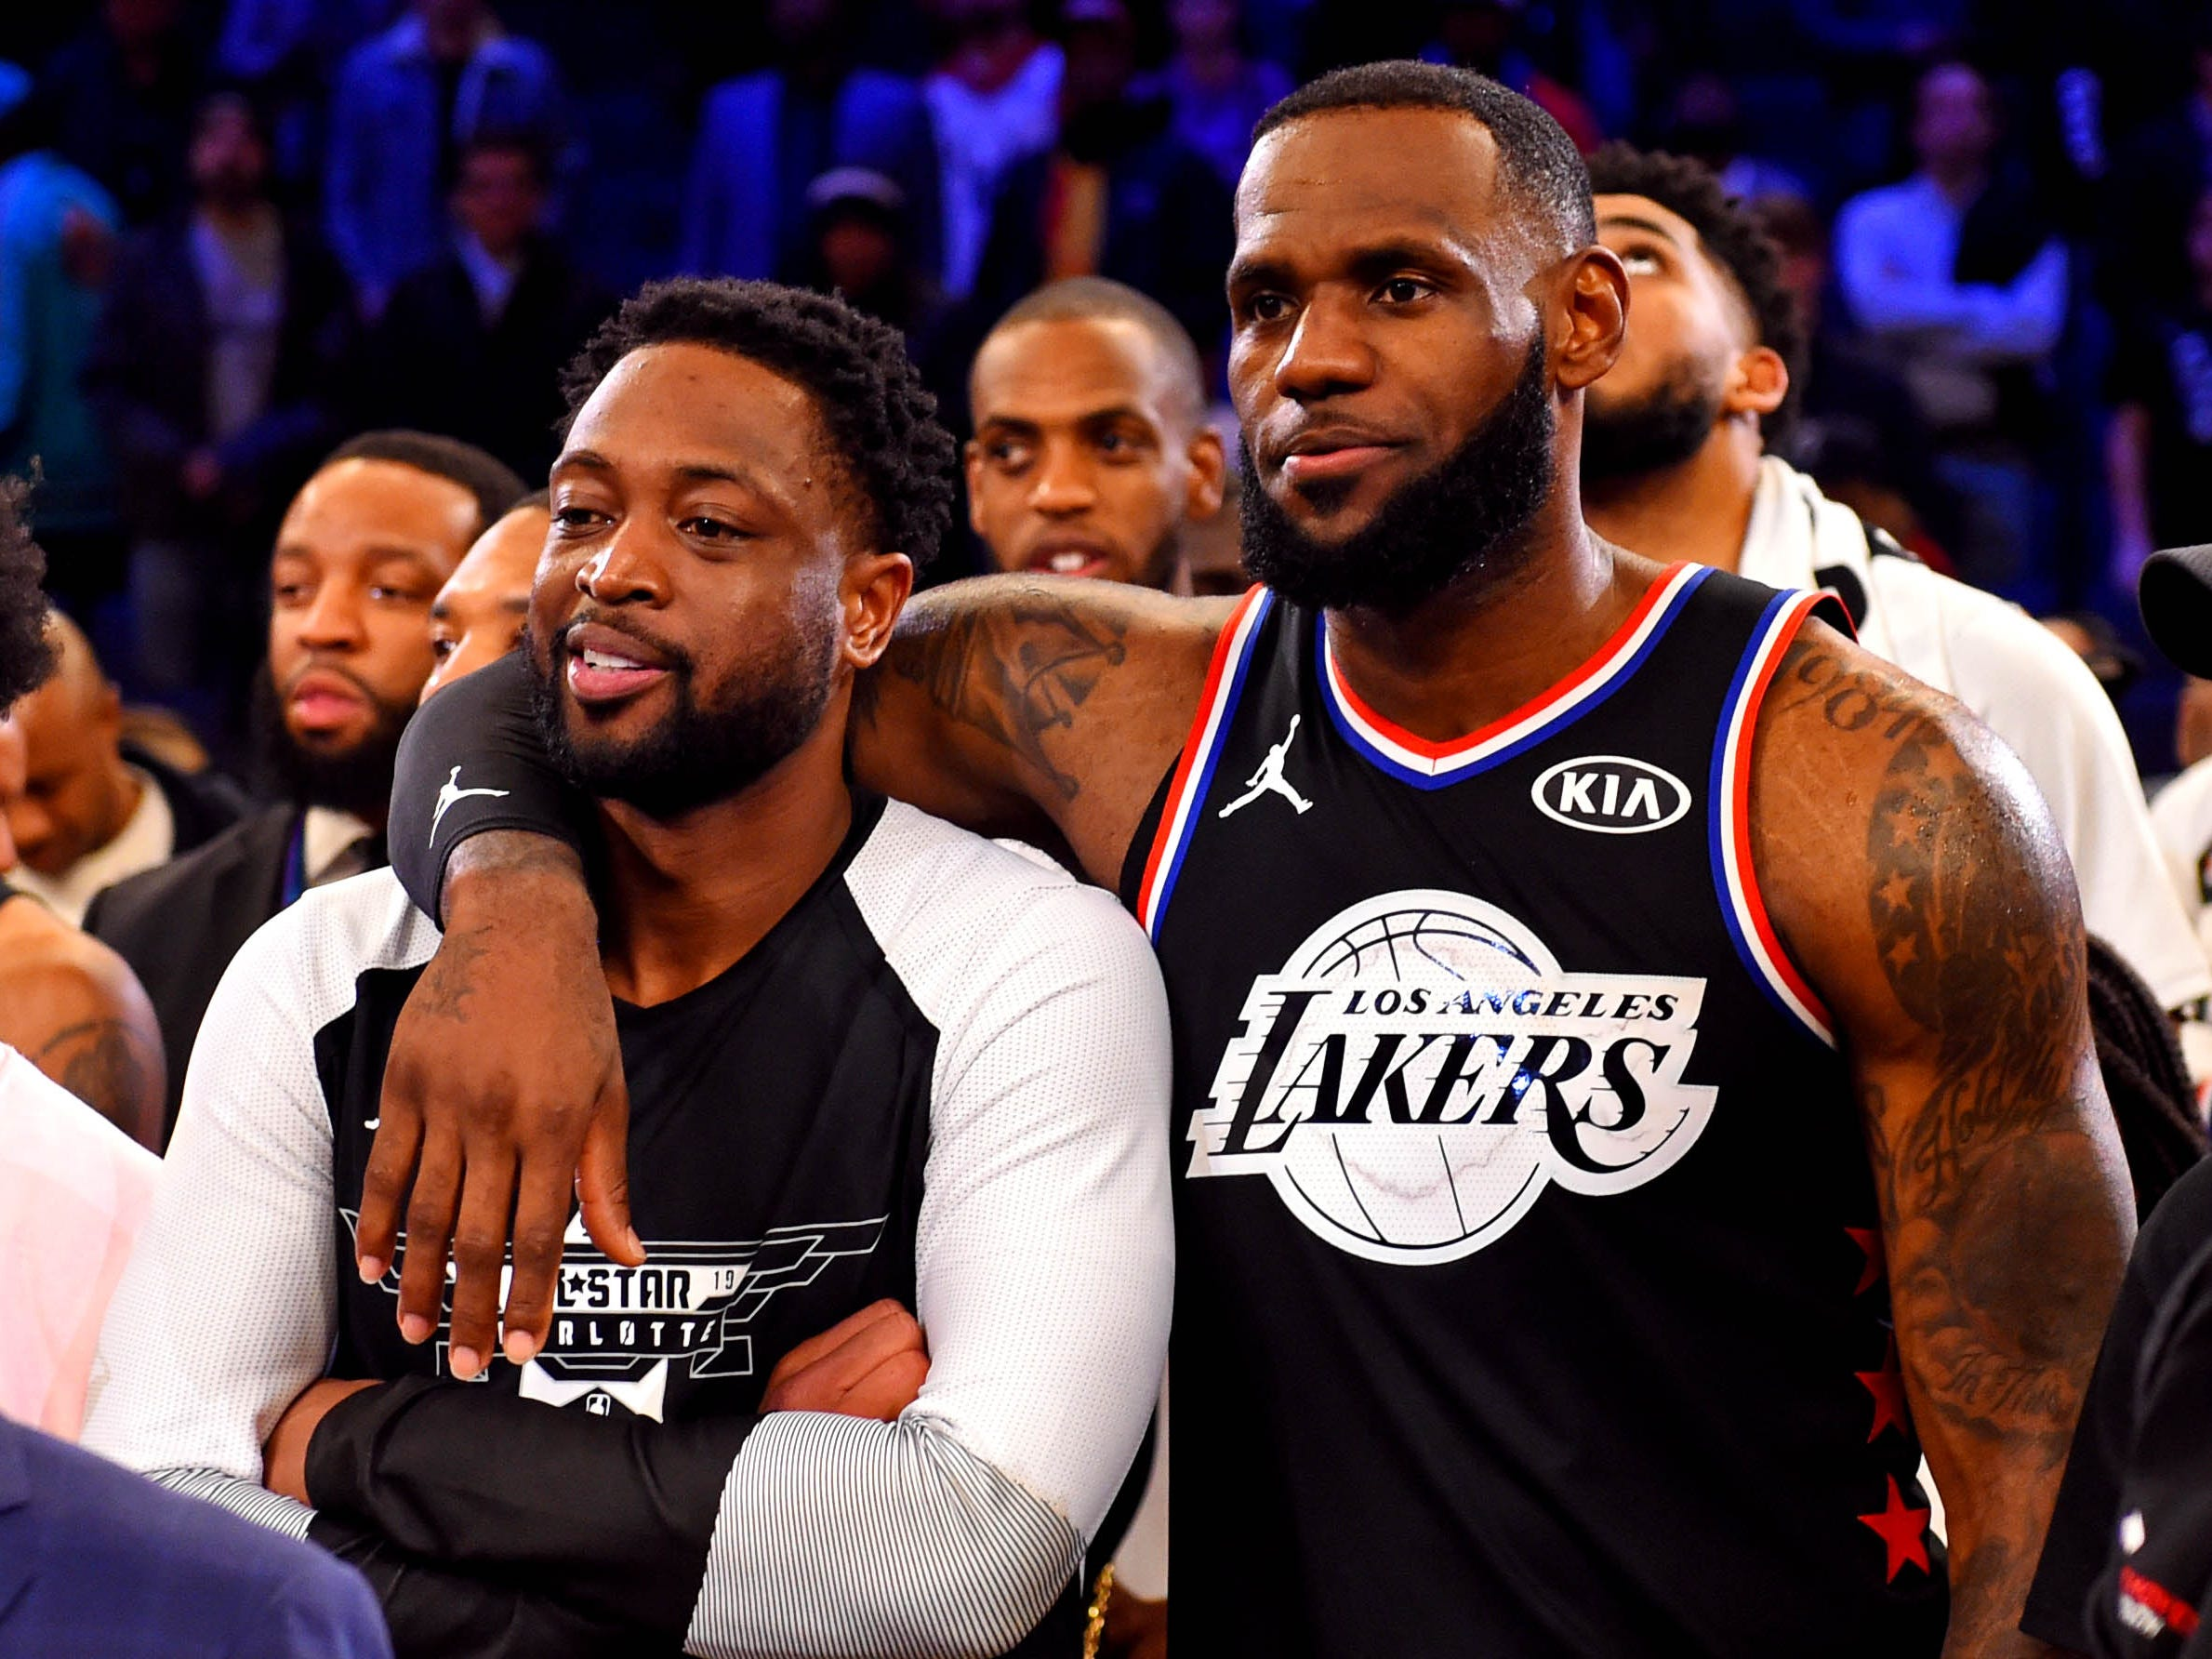 LeBron James and Dwyane Wade share a moment after the All-Star Game.